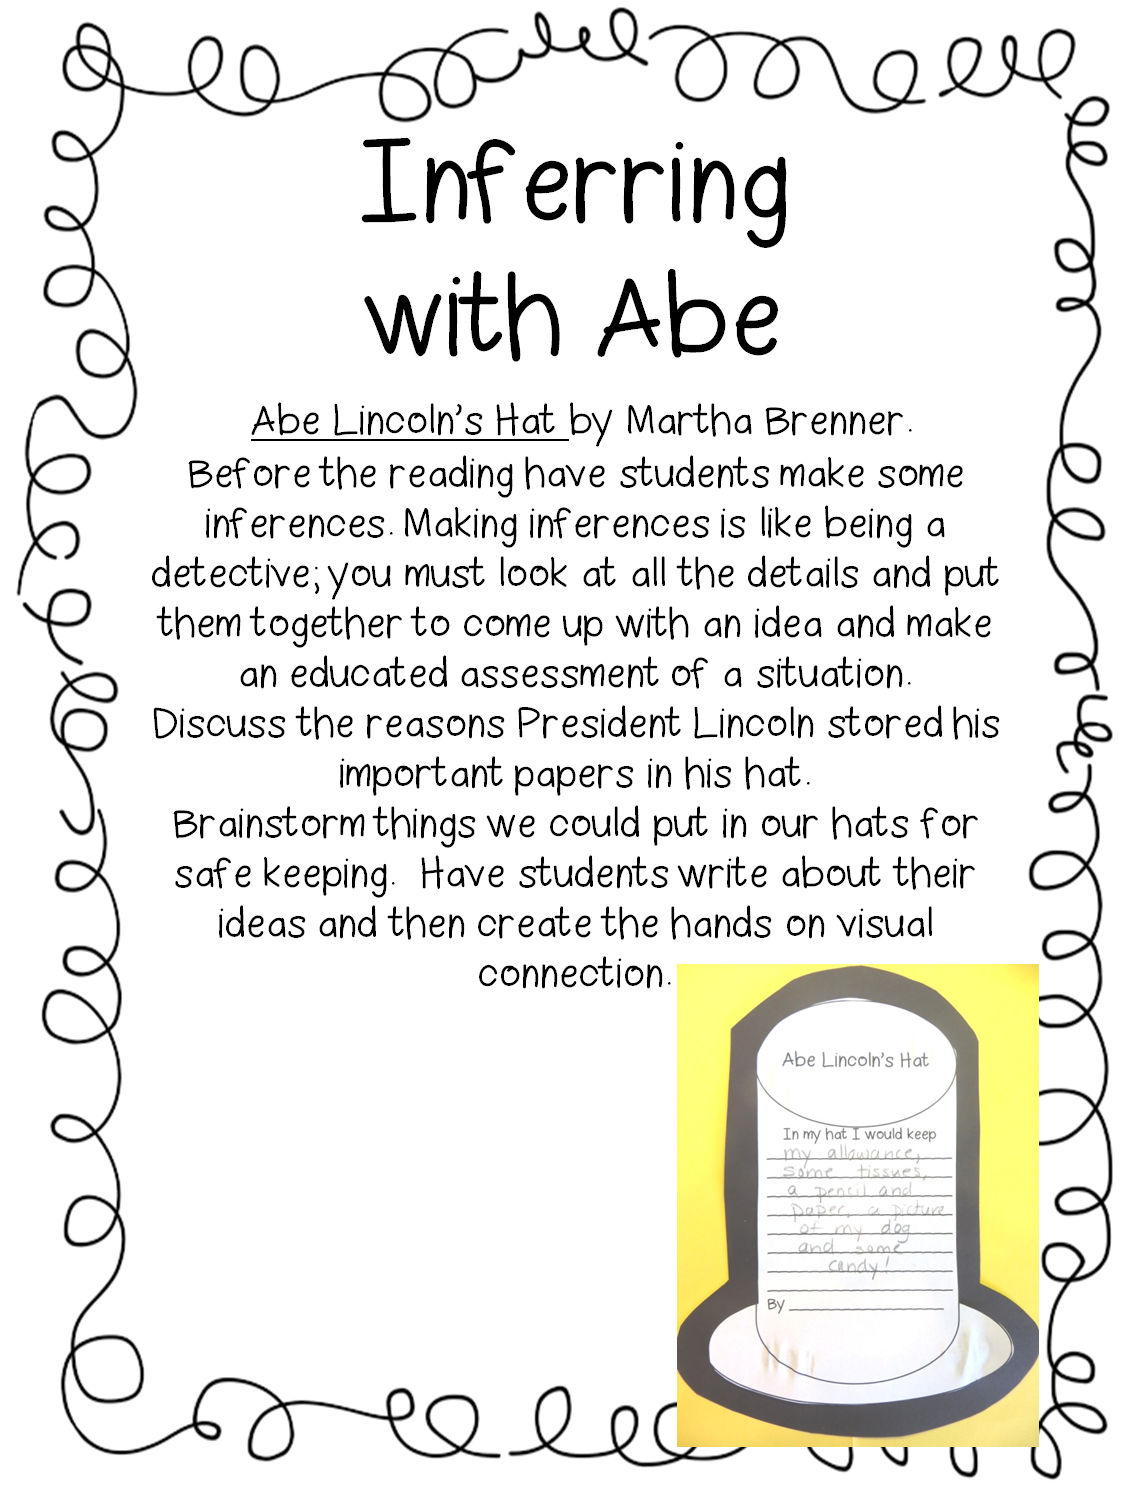 Worksheet Abraham Lincoln As President